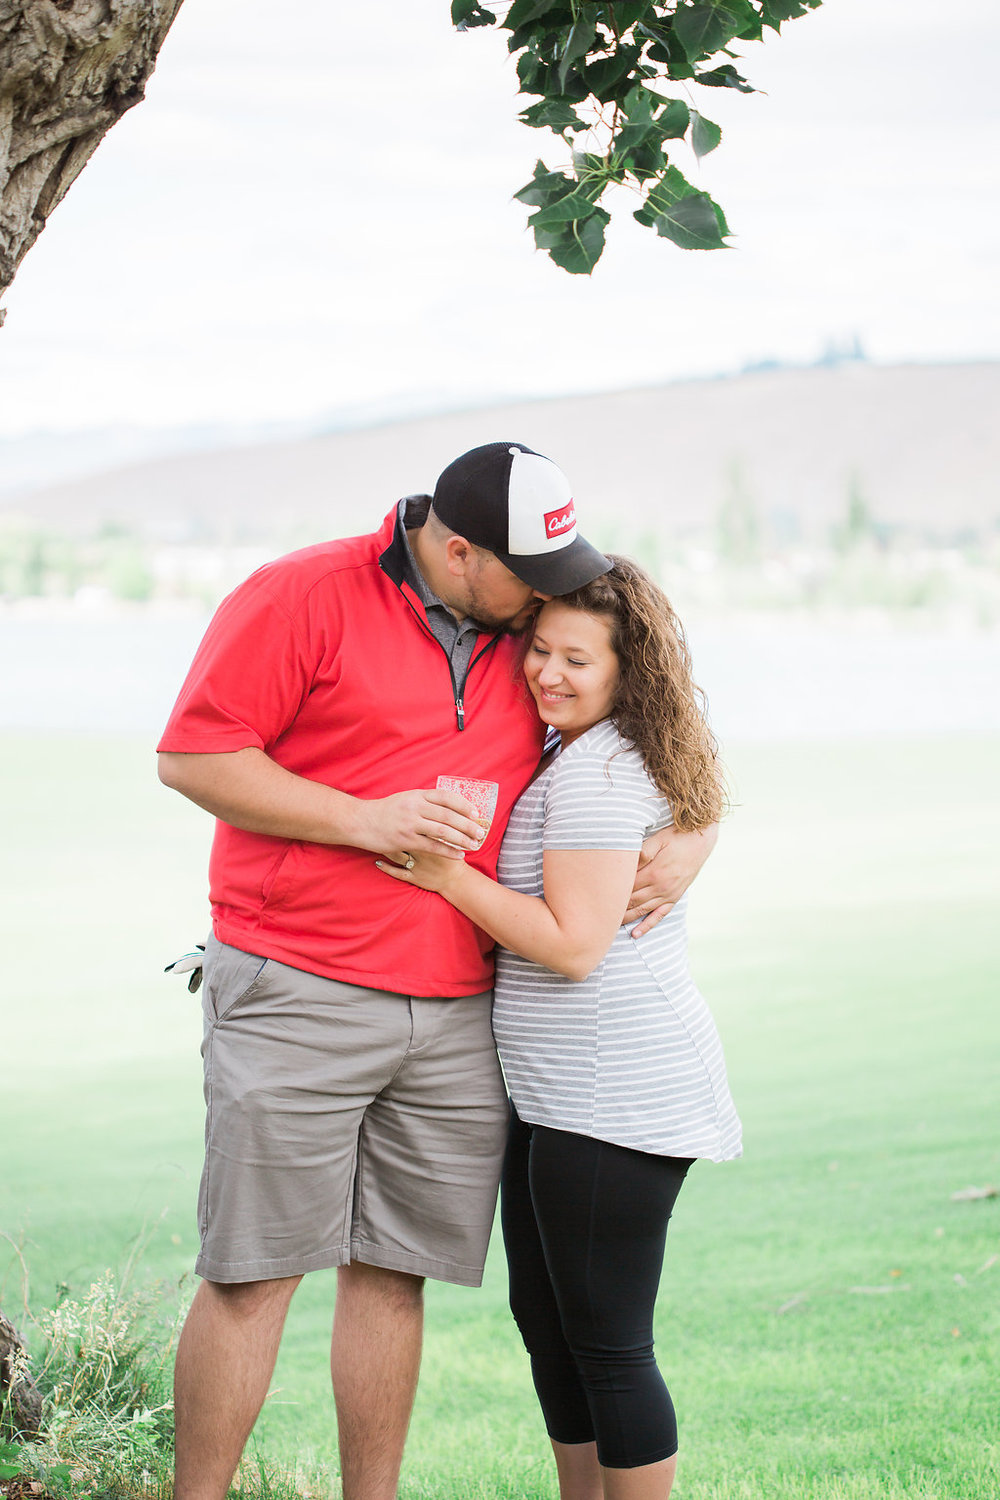 Golf Course Proposal | 9th Hole Proposal | Golf Course Photo Session | Beautiful Engagement Session | Seattle Wedding Photographer | Surprise Proposal | Kiss Shot | Engaged